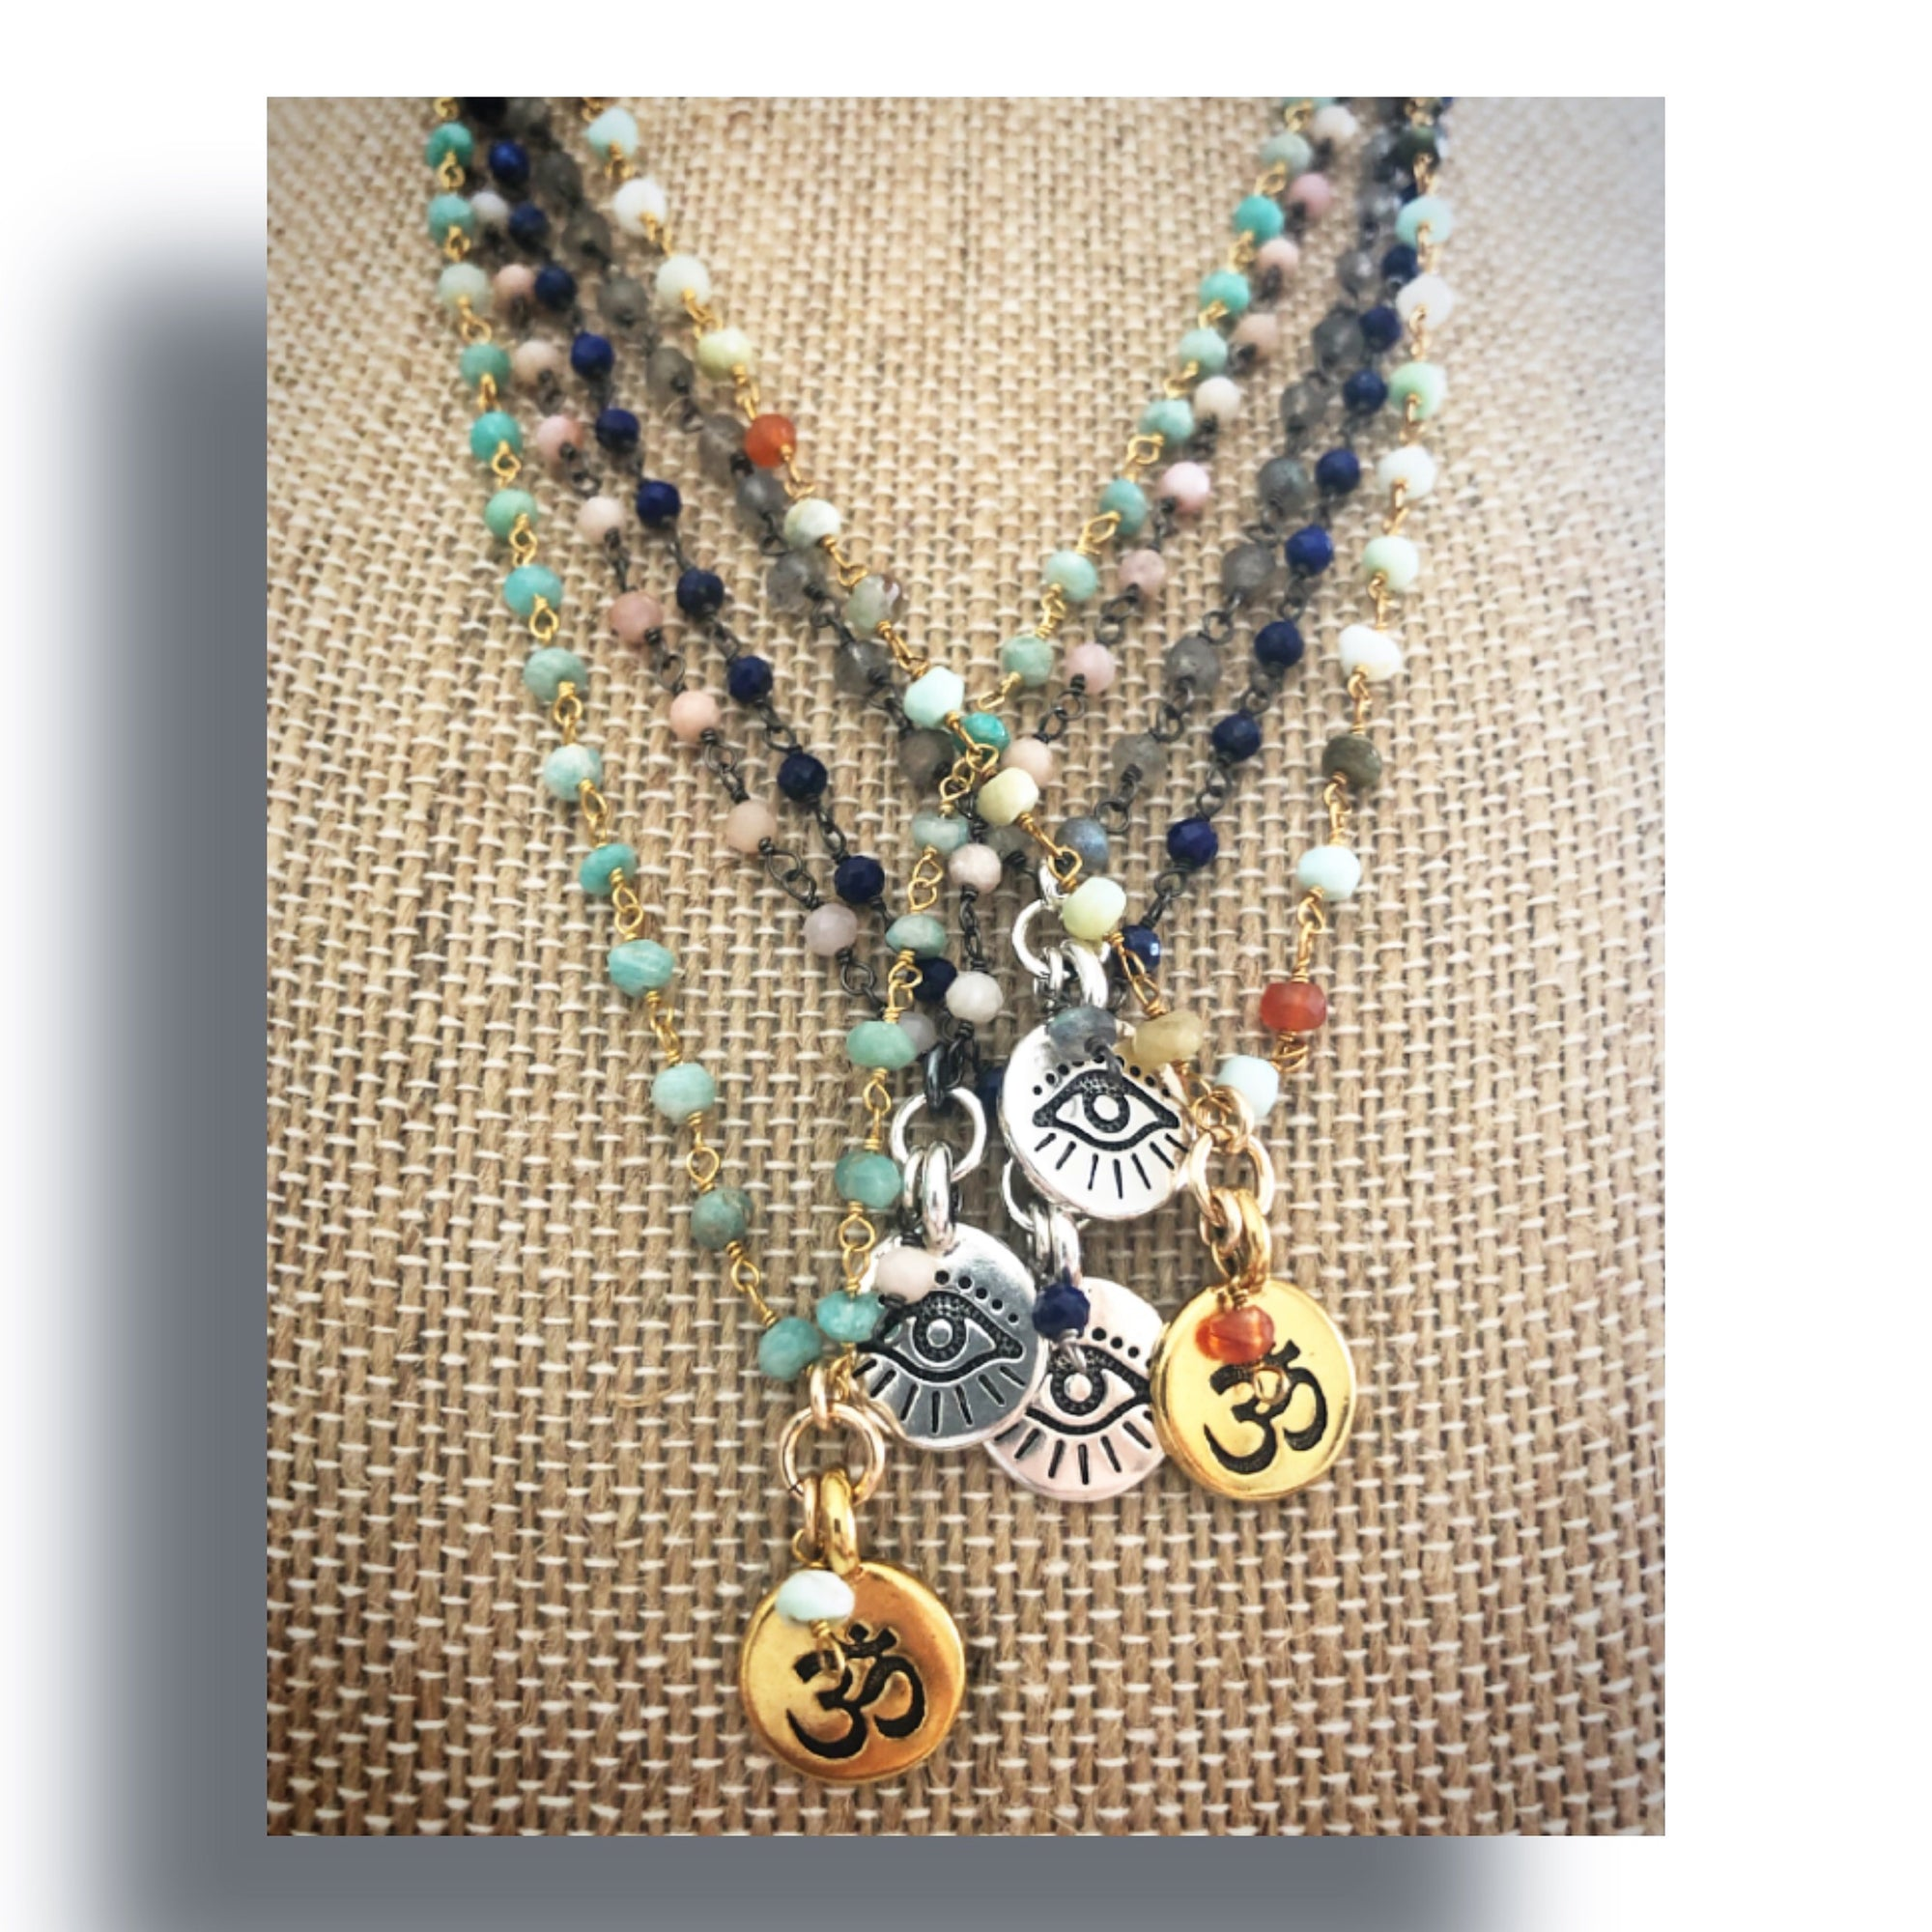 heather matjasic ohm jewelry shop rosary spirit necklaces gemstone chains om yoga jewelry gold silver